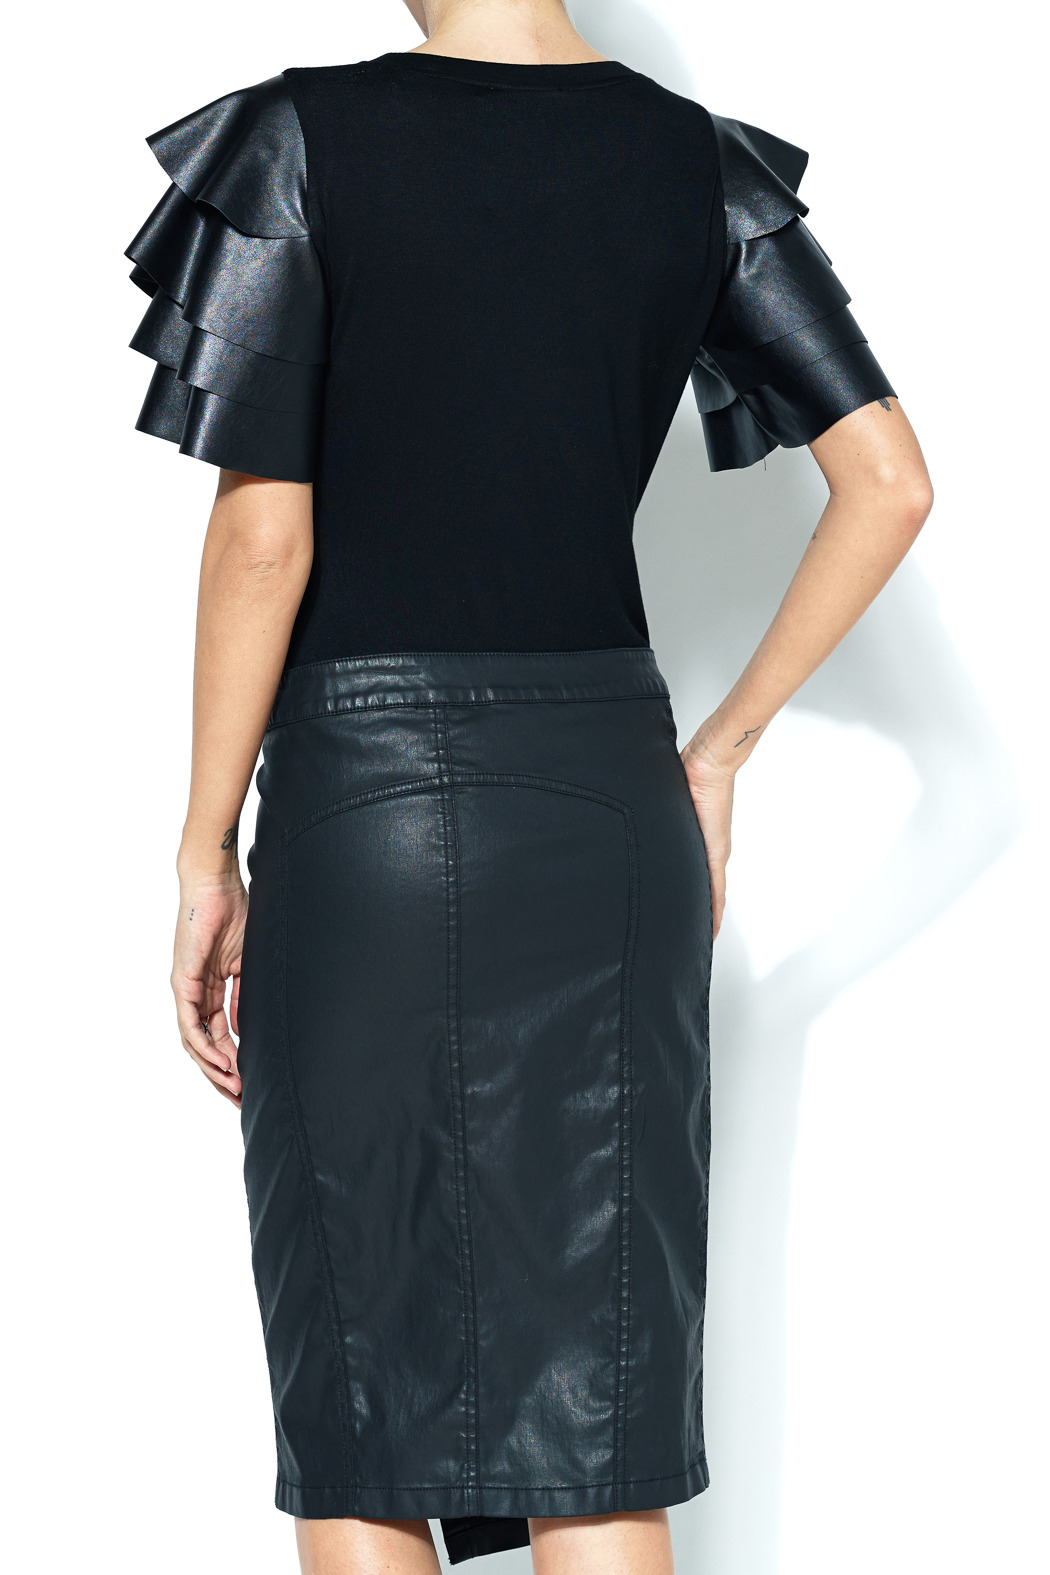 Gracia Ruffle Faux Leather Top From New York By Next